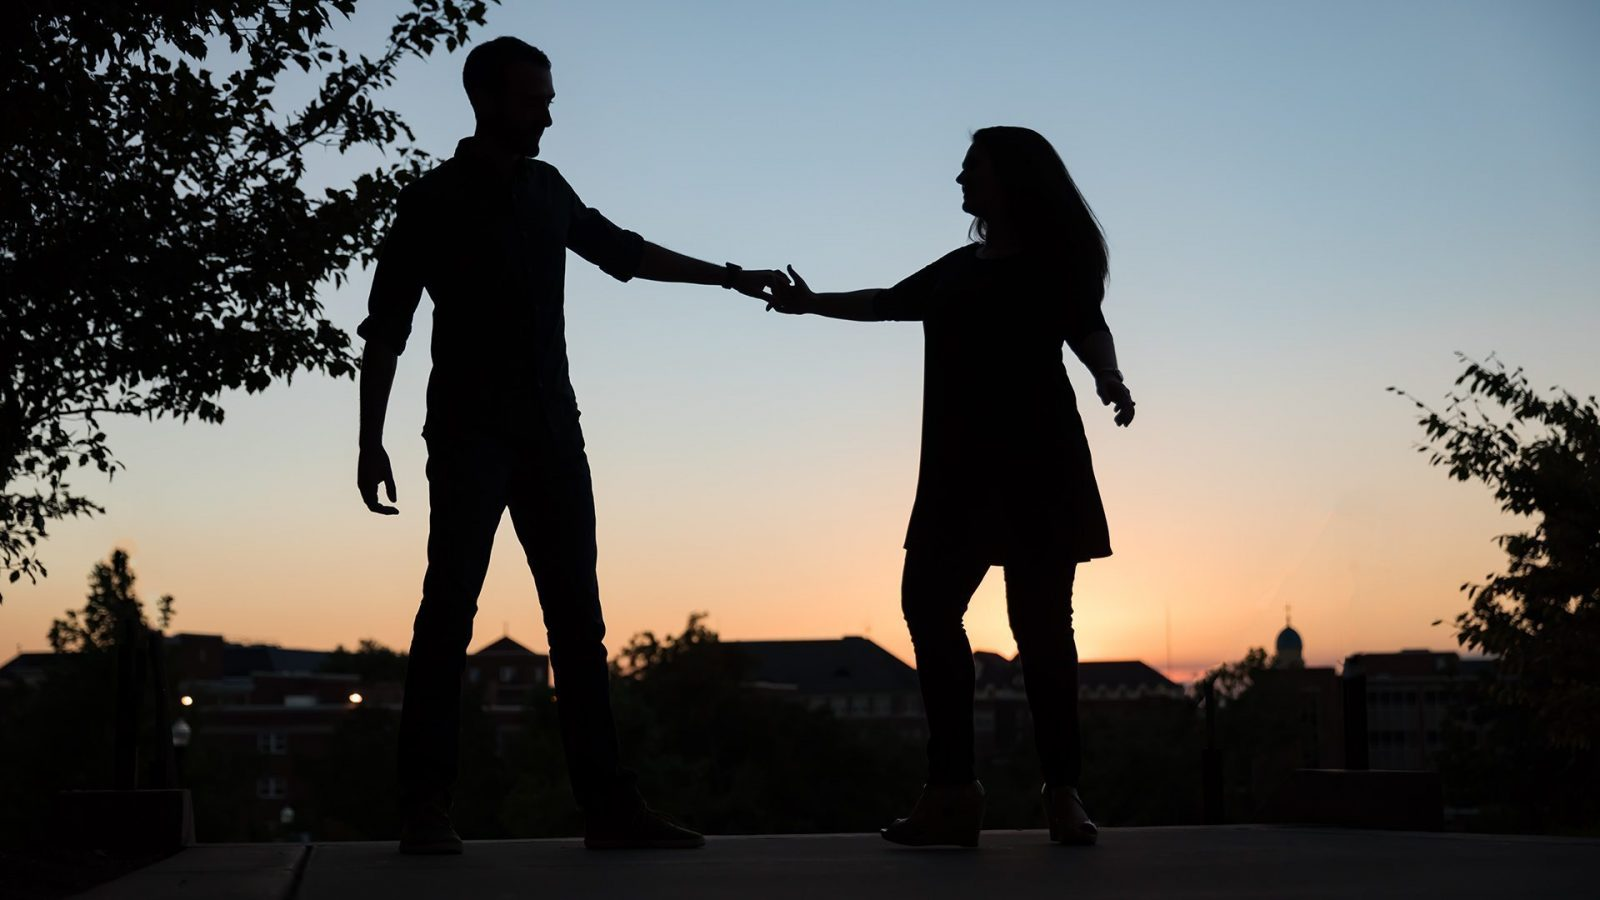 University of Dayton Engagement Photography